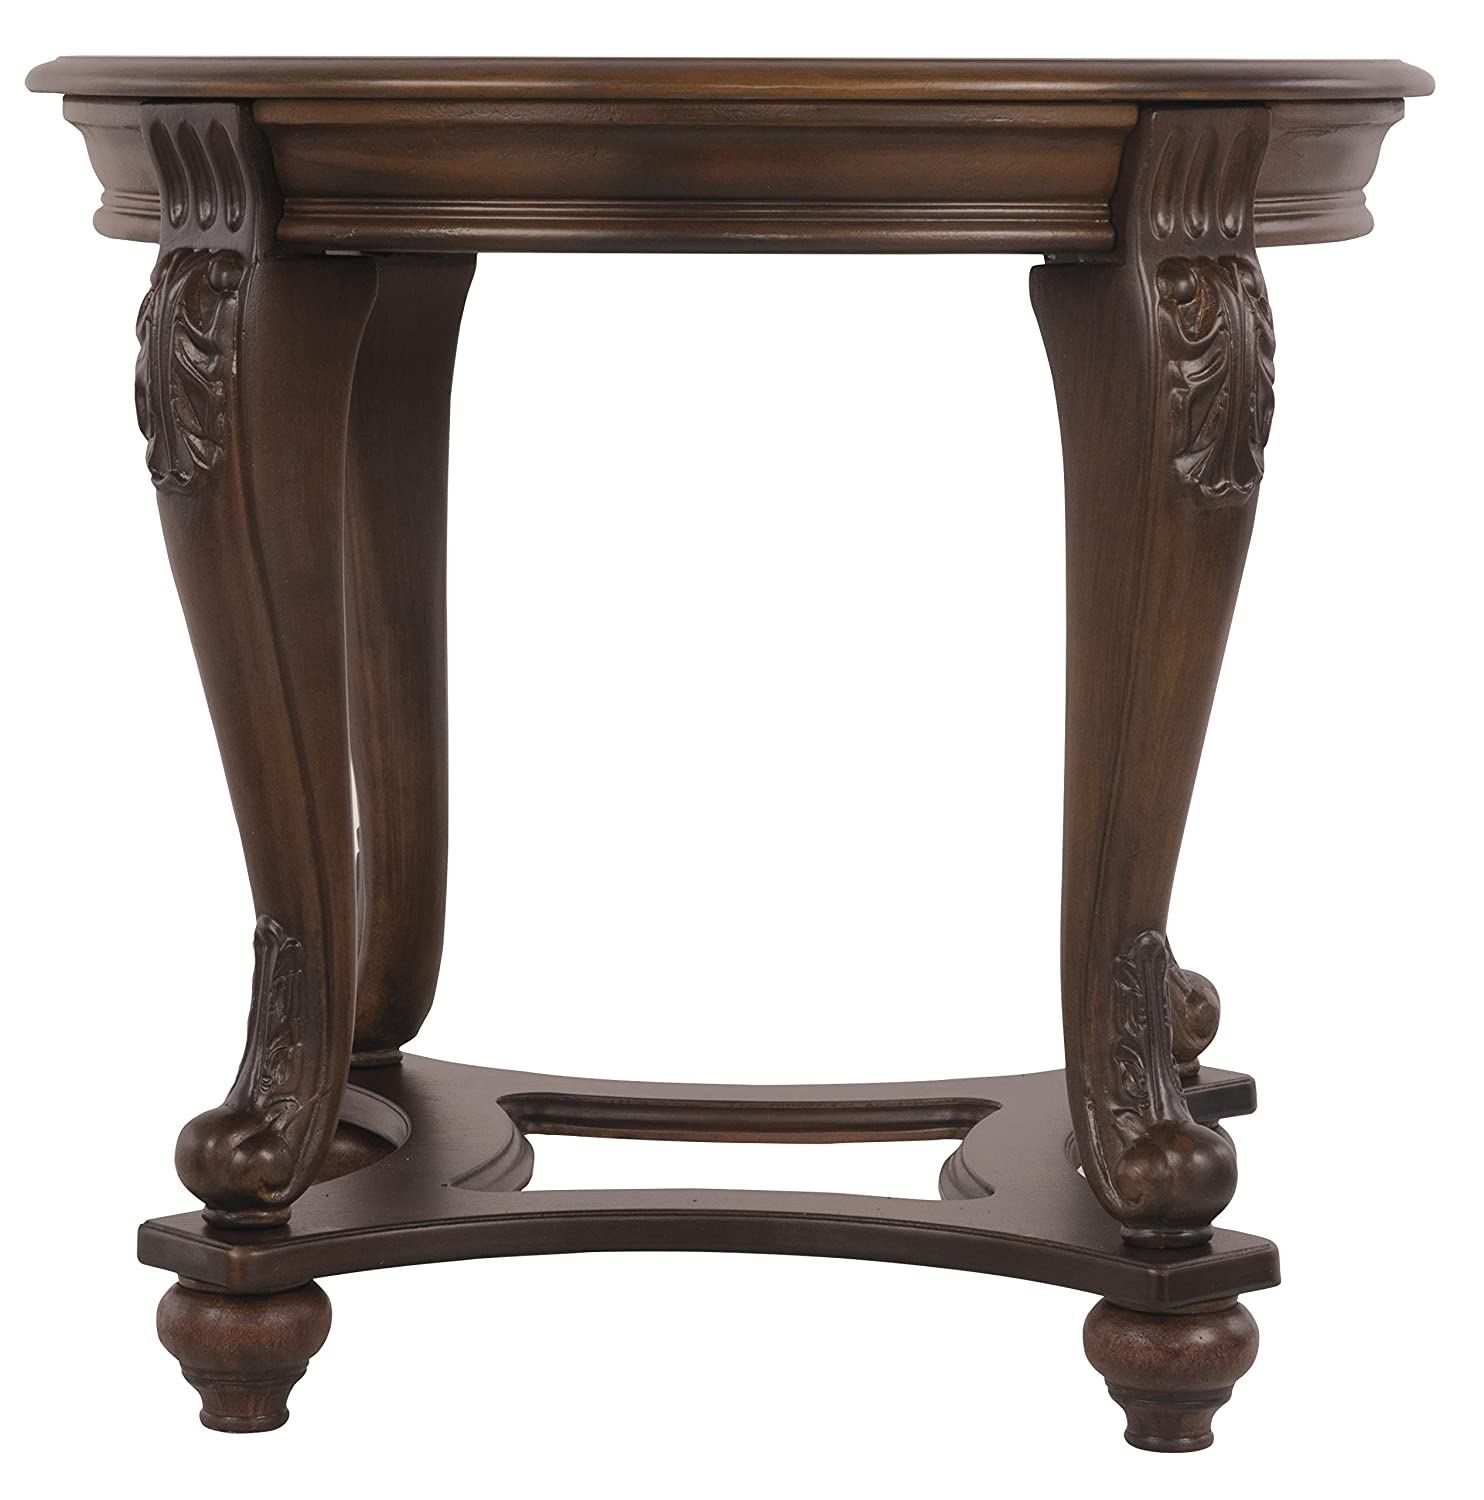 Ashley Furniture Signature Design - Norcastle End Table - Traditional Vintage Style - Round - Dark Brown